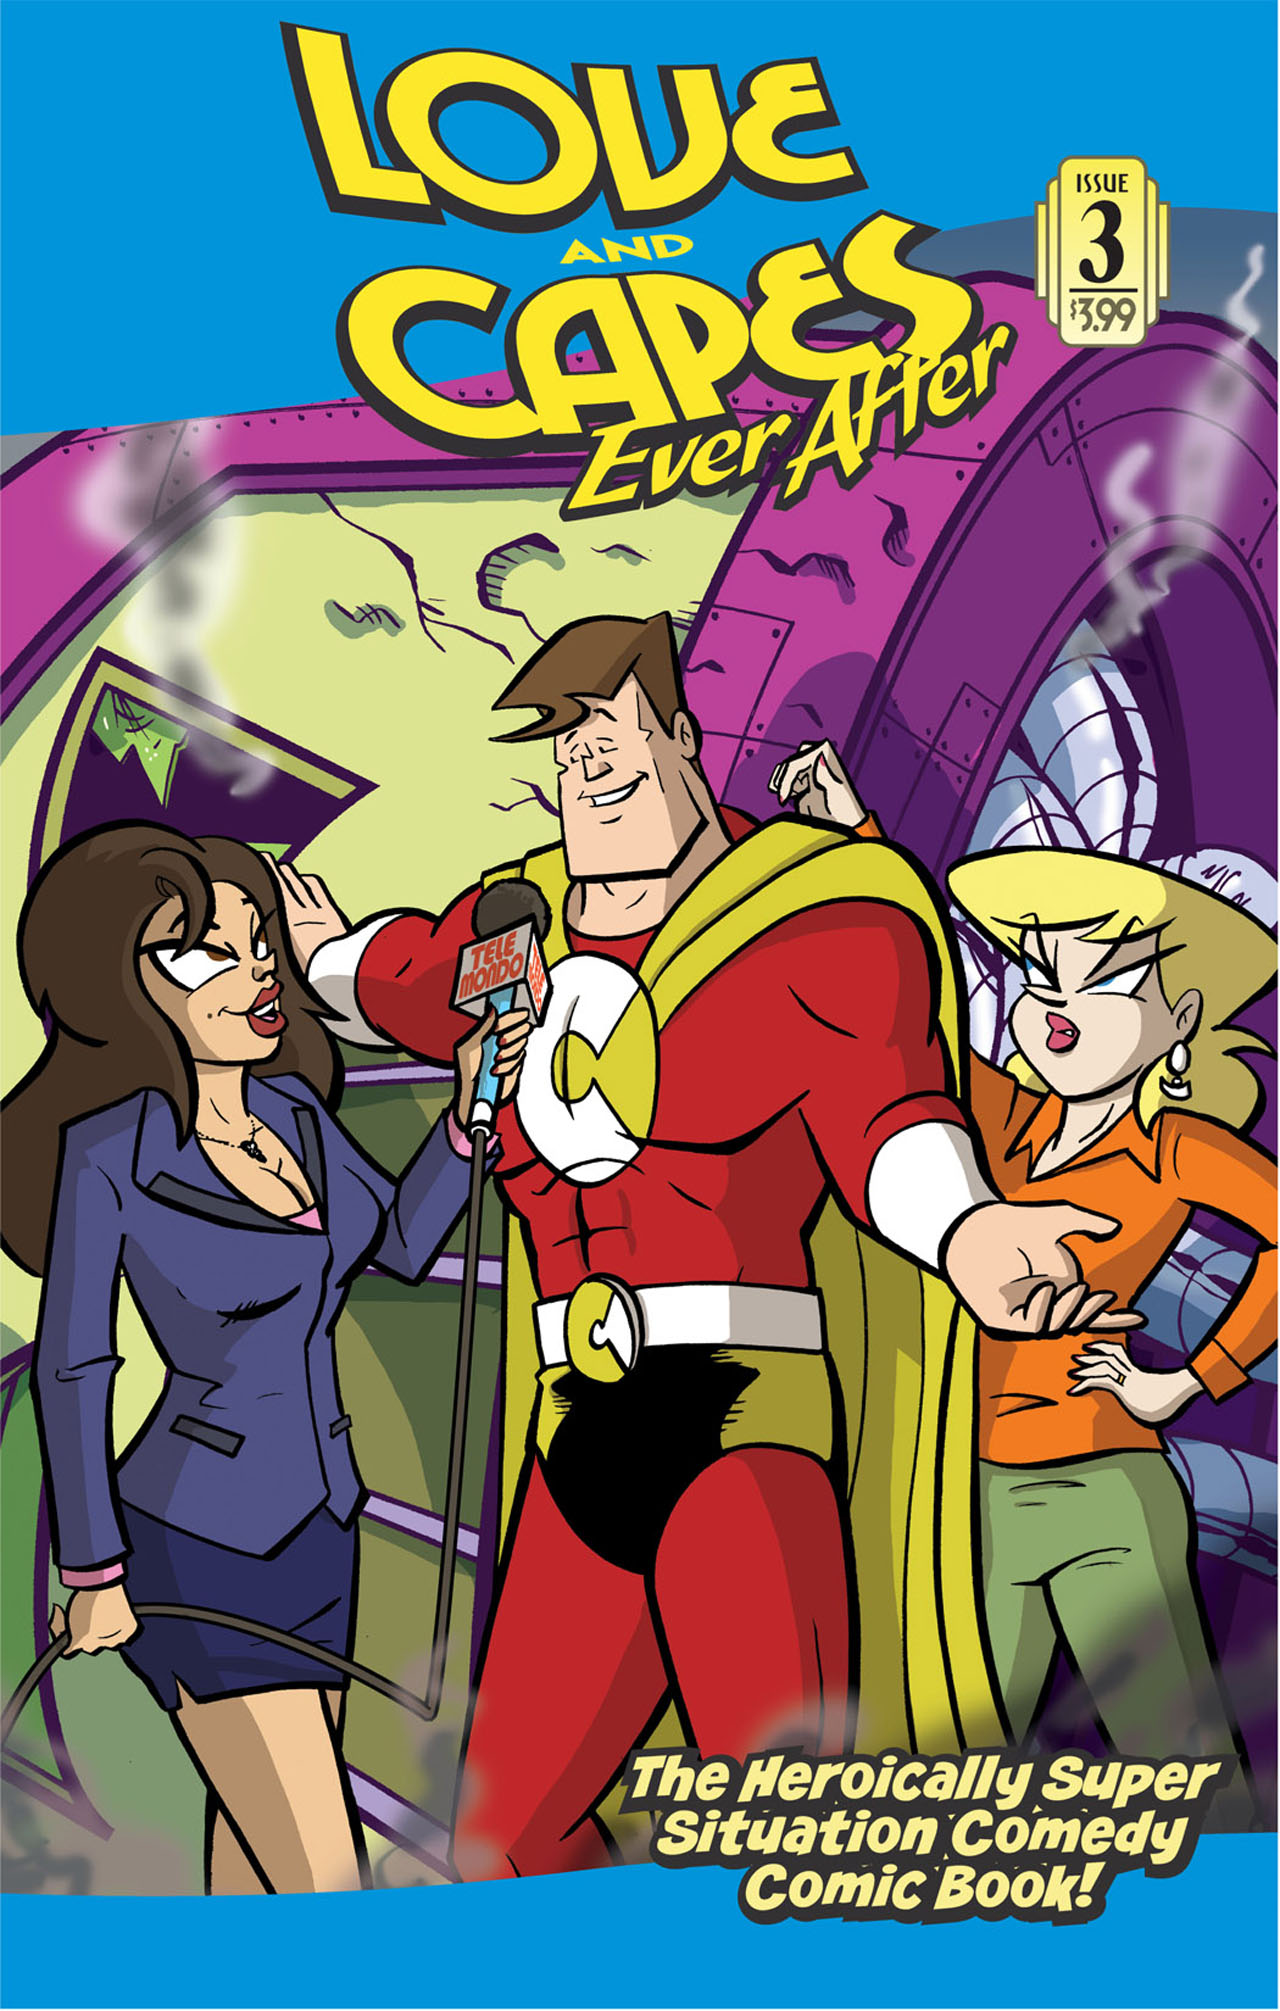 Love and Capes: Ever After (2011) #3 by Thom Zahler.